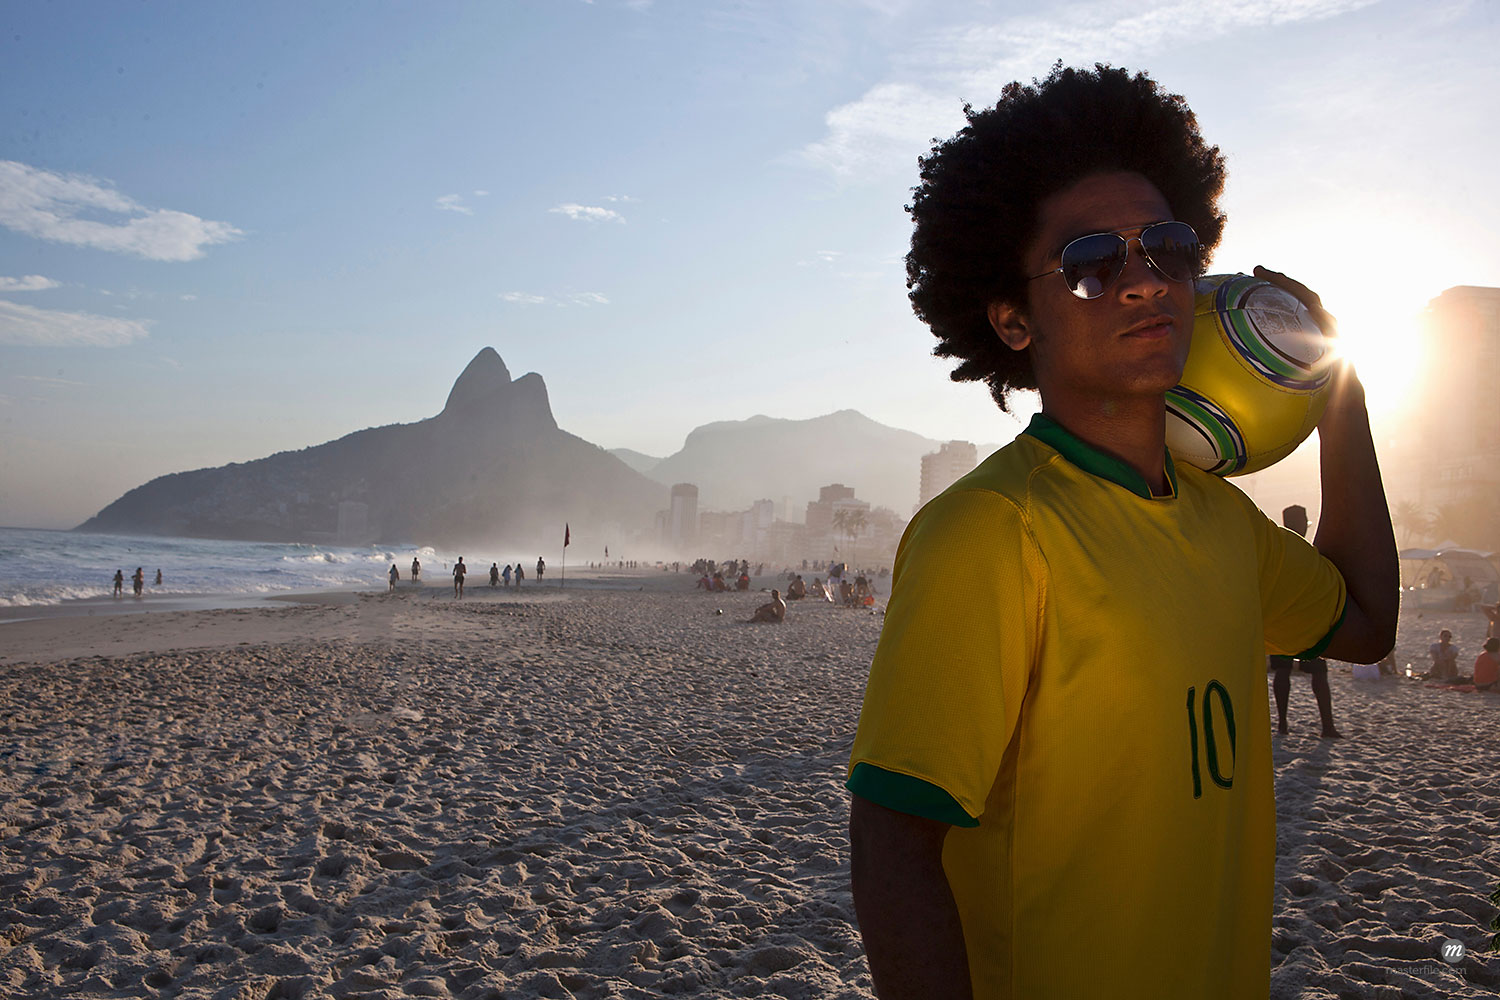 Young man at the beach with football, Ipanema Beach, Rio, Brazil  © Masterfile